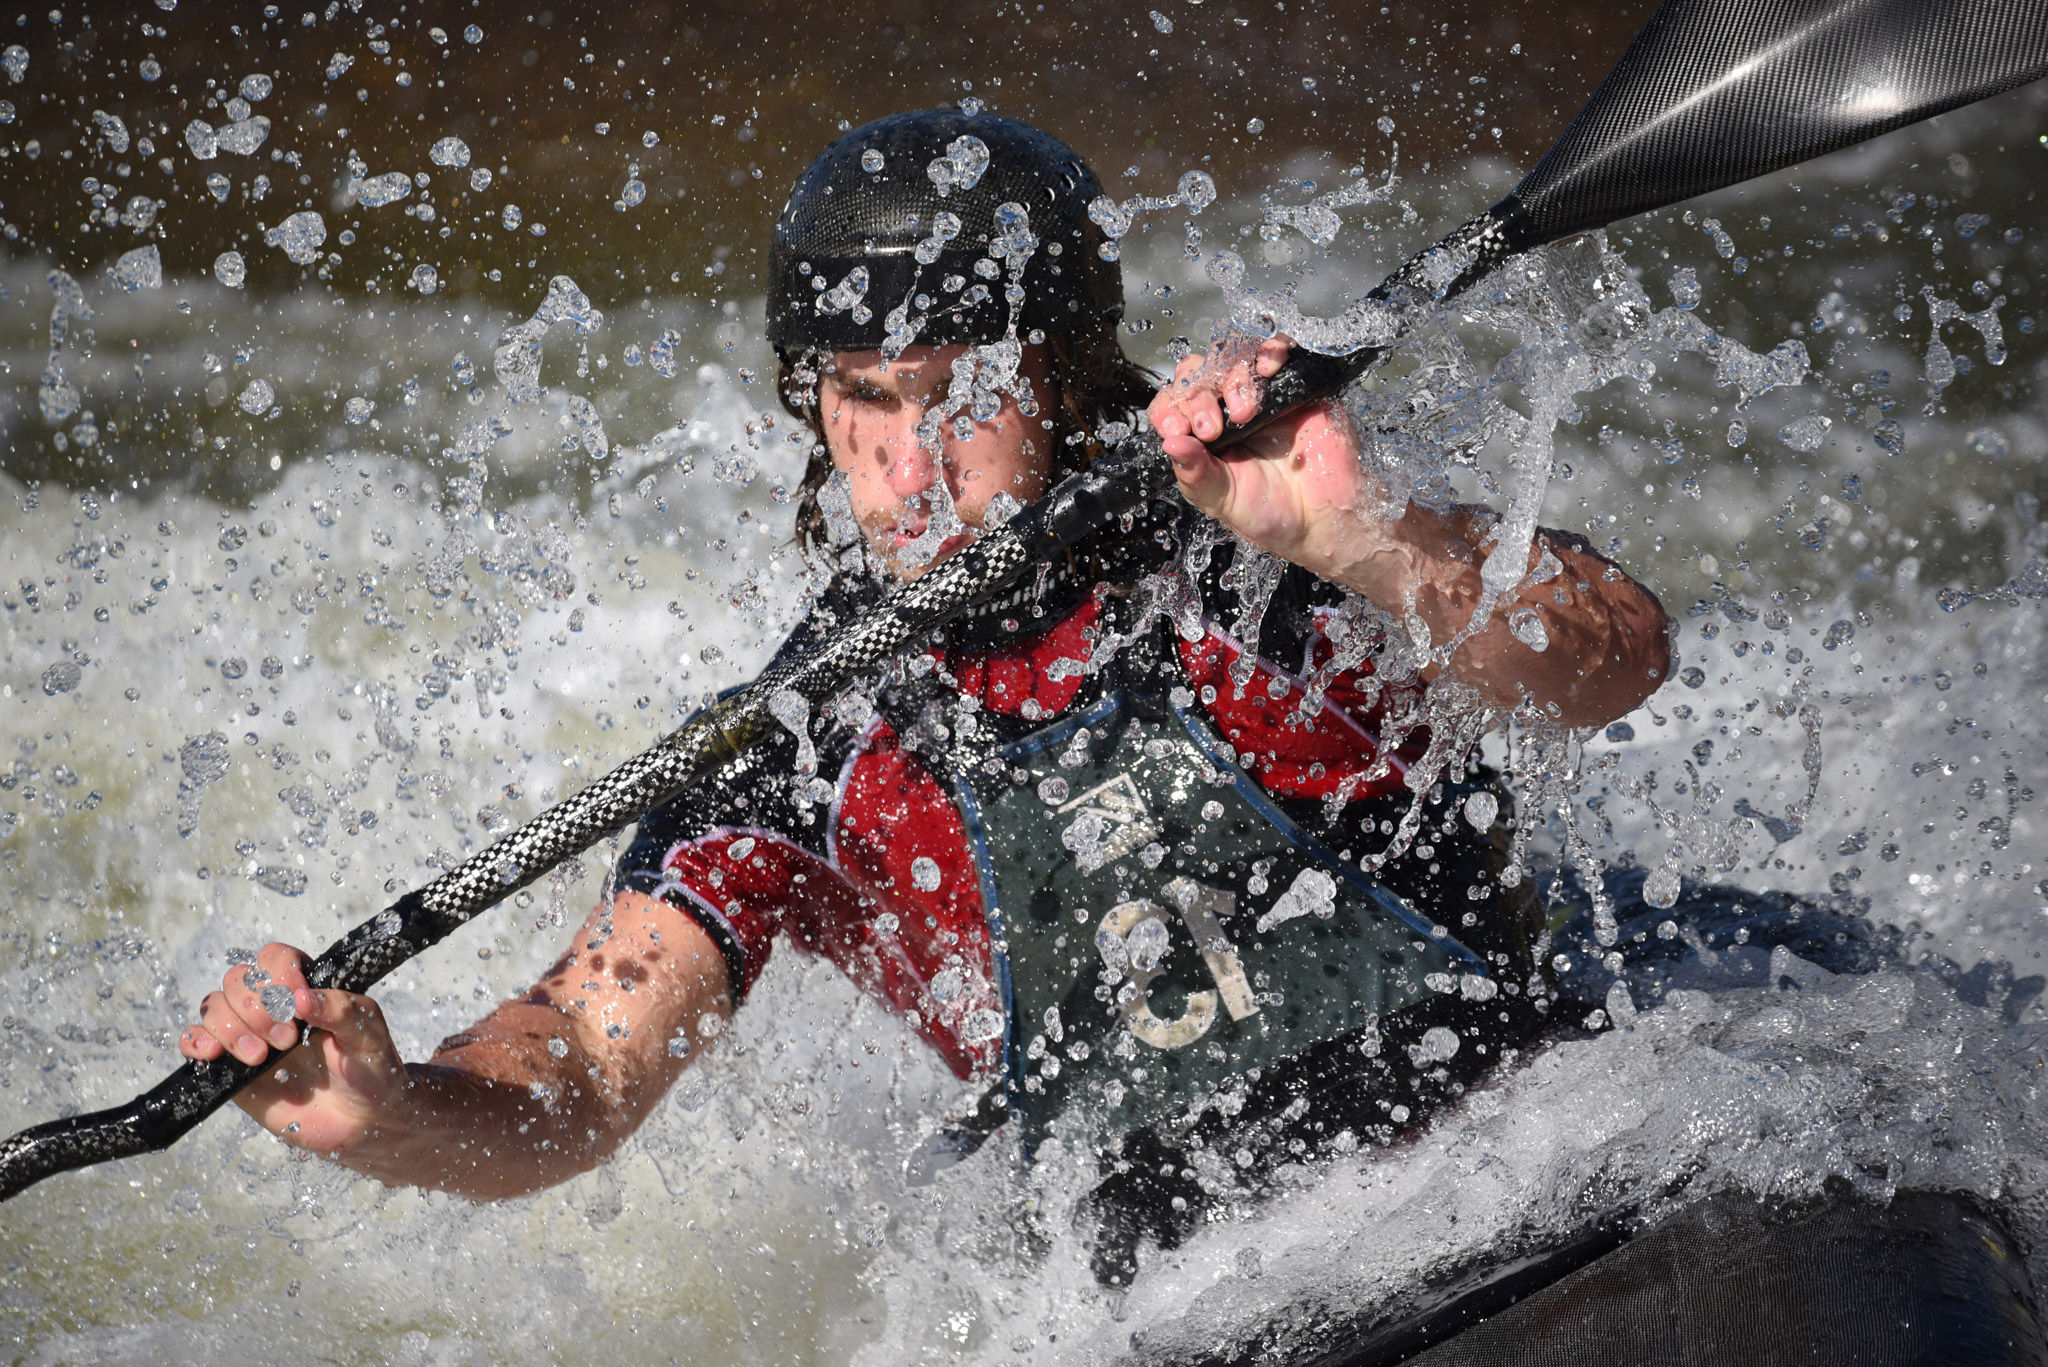 AF-P NIKKOR 70-300mm f/4.5-5.6E ED VR photo of a kayaker in white water